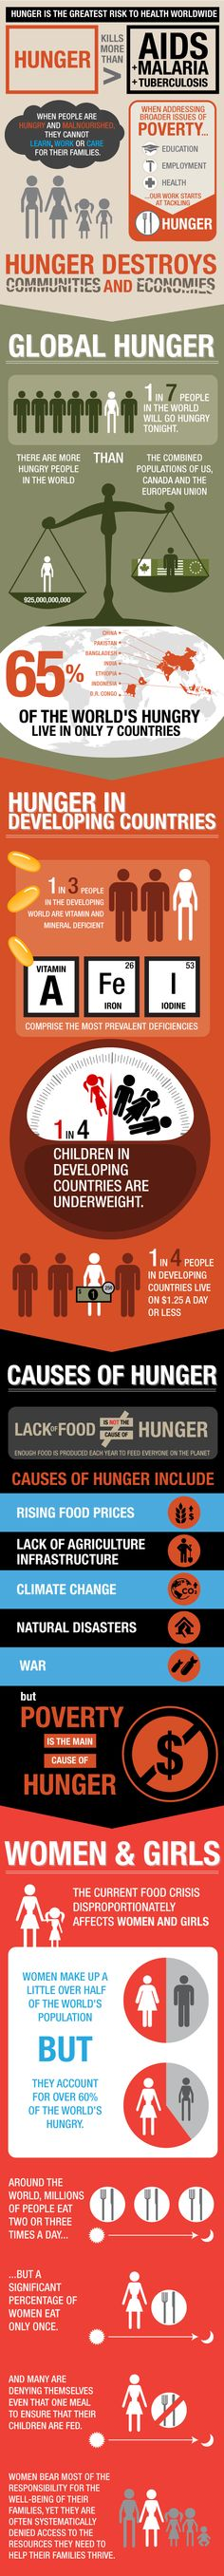 Hunger is the greatest risk to health worldwide - via @Feedprojects